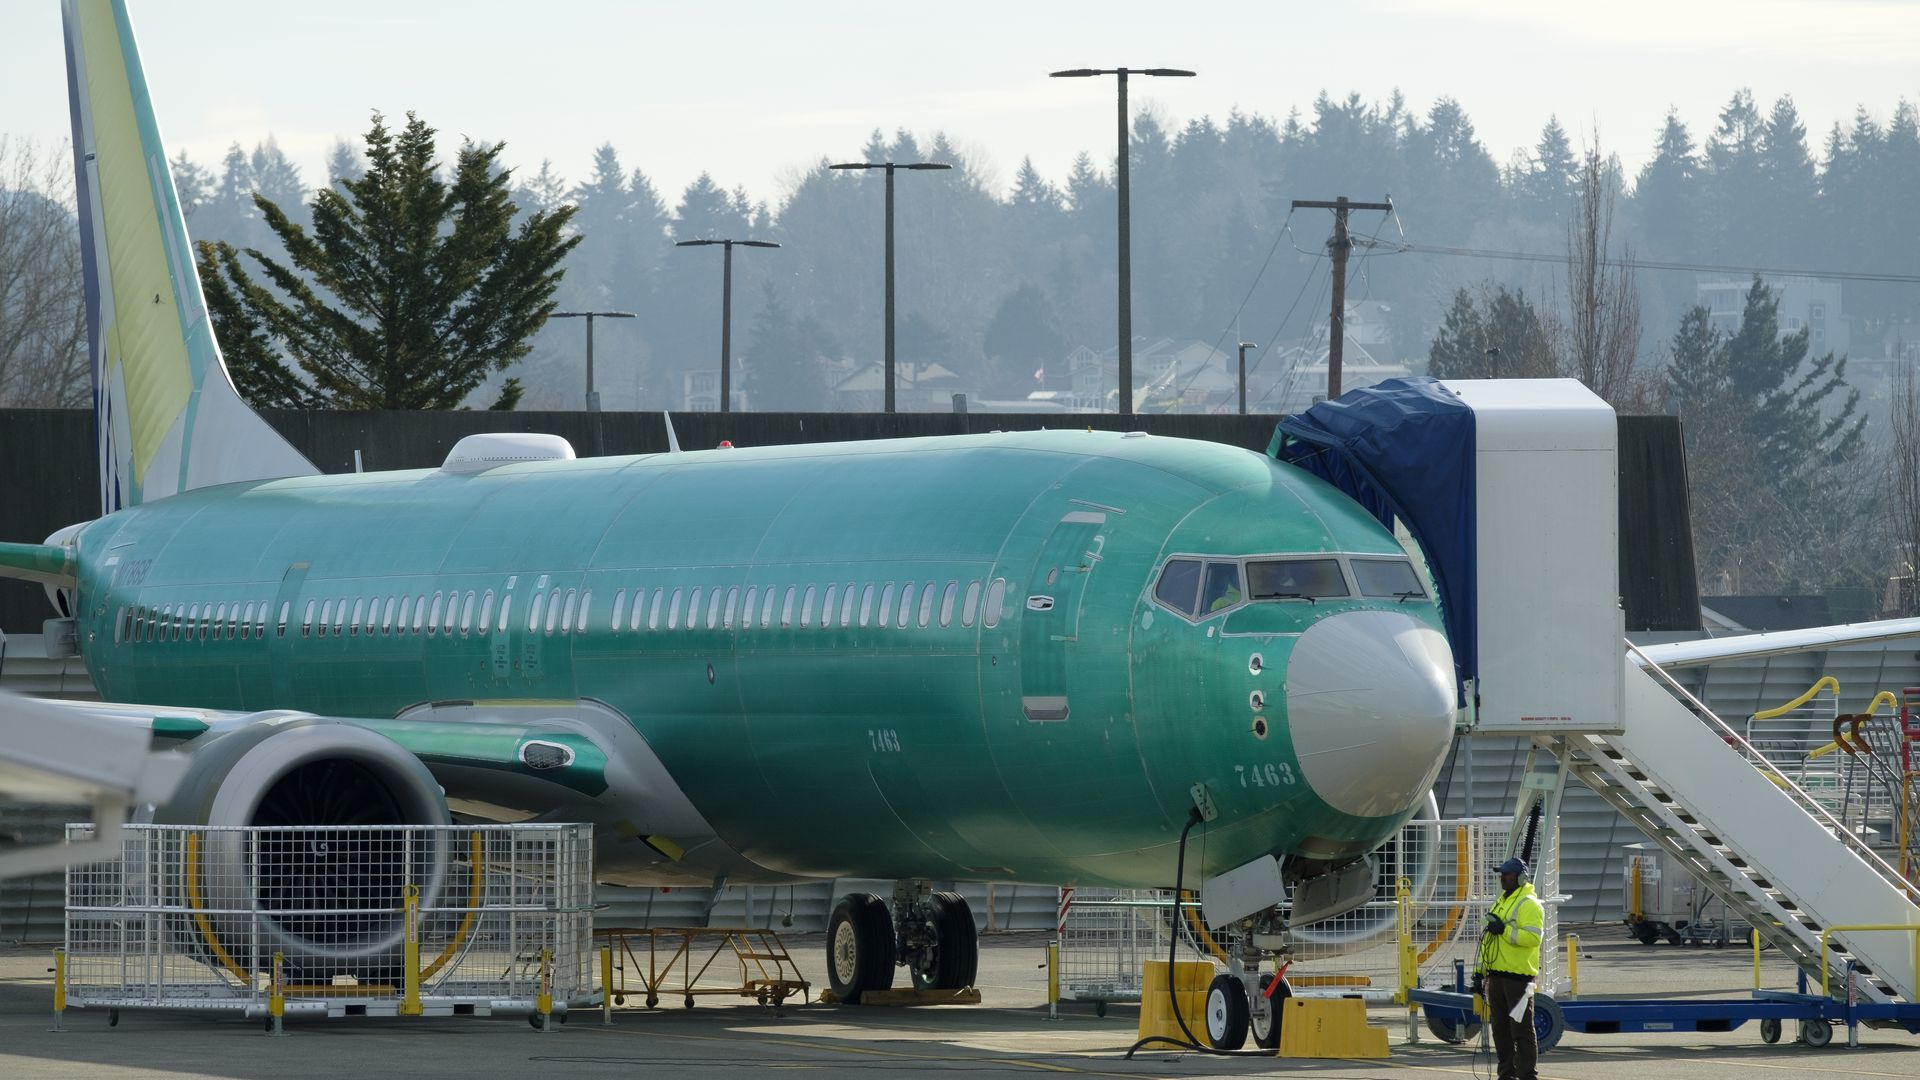 Boeing says improvements will be deployed across the entire Max 8 fleet in coming weeks.